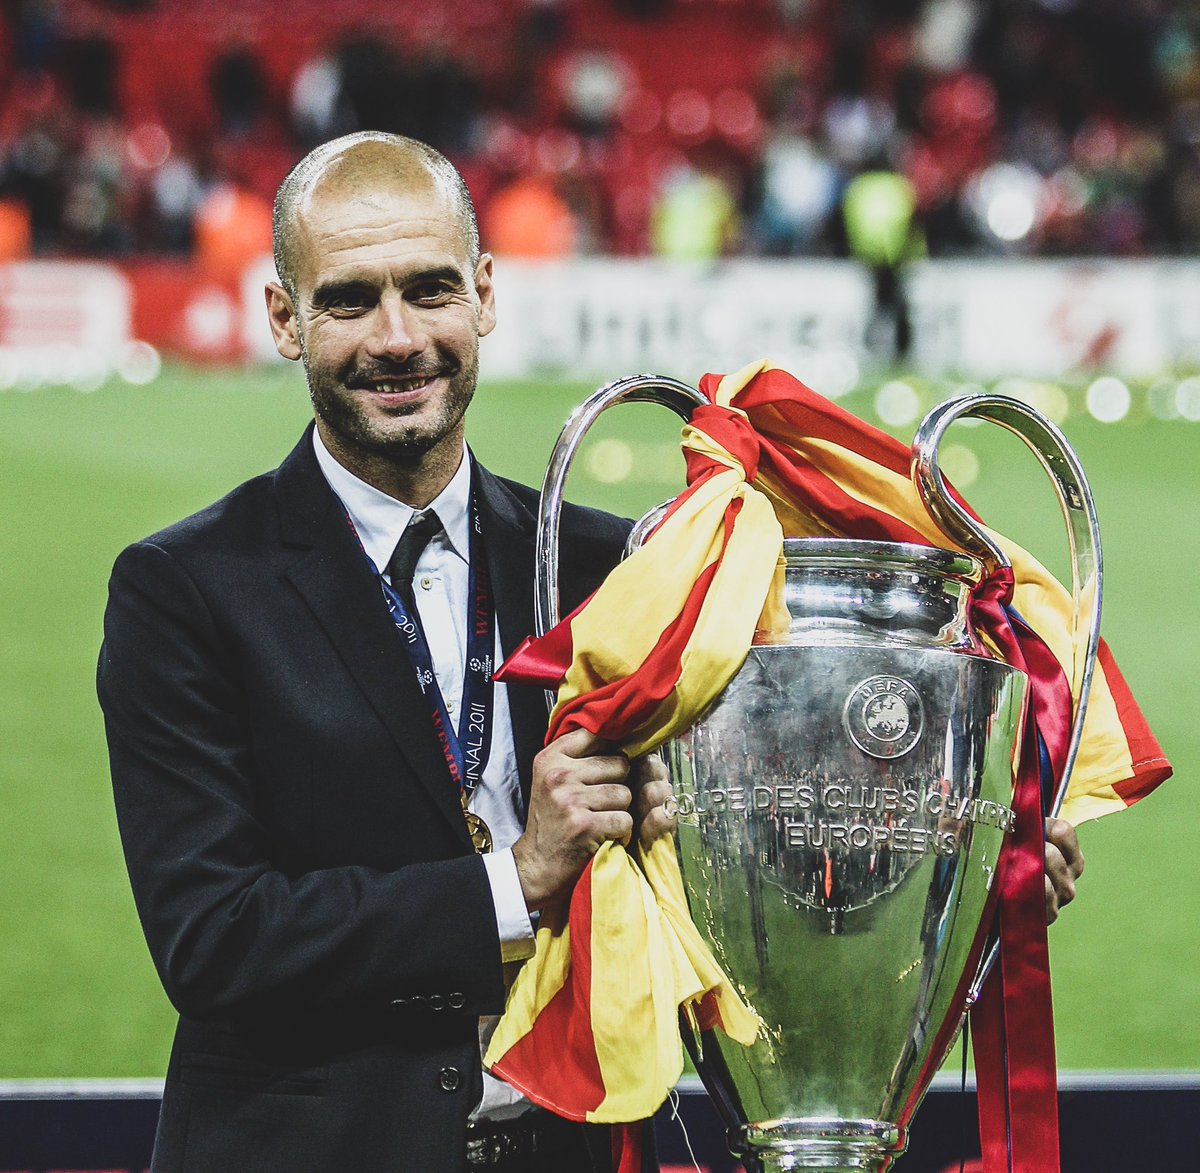 🎉 Happy 48th Birthday Pep Guardiola!  🏟 555 Games 🏆 25 Trophies  3 🏆🇪🇸 La Liga 3 🏆🇪🇸 Super Cup 2 🏆🇪🇸 Copa del Rey  3 🏆🇩🇪 Bundesliga 2 🏆🇩🇪 DFB-Pokal  1 🏆🏴󠁧󠁢󠁥󠁮󠁧󠁿 Premier League 1 🏆🏴󠁧󠁢󠁥󠁮󠁧󠁿 League Cup  3 🏆🌎 Club World Cup 3 🏆🇪🇺 Super Cup 2 🏆🇪🇺 UCL  👏 Best In The World.